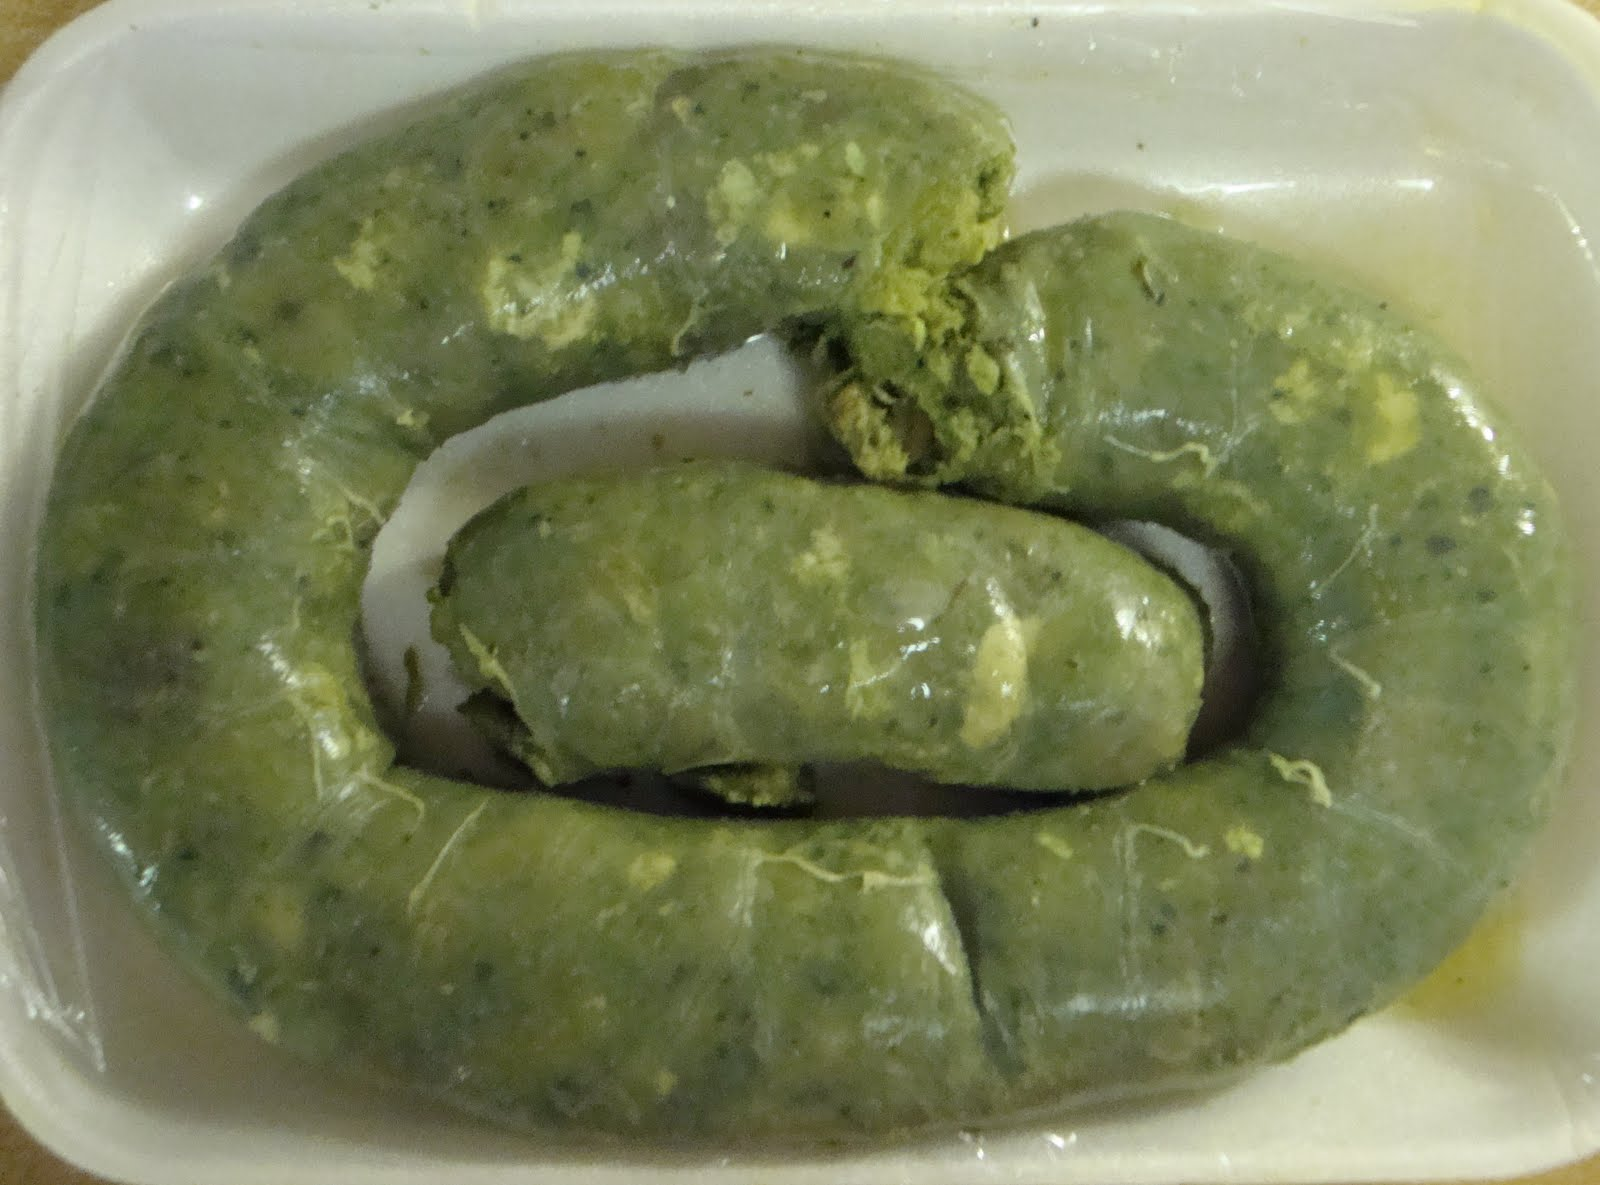 Food Floozie: It's Not Green Eggs and Ham, It's Green Sausage!